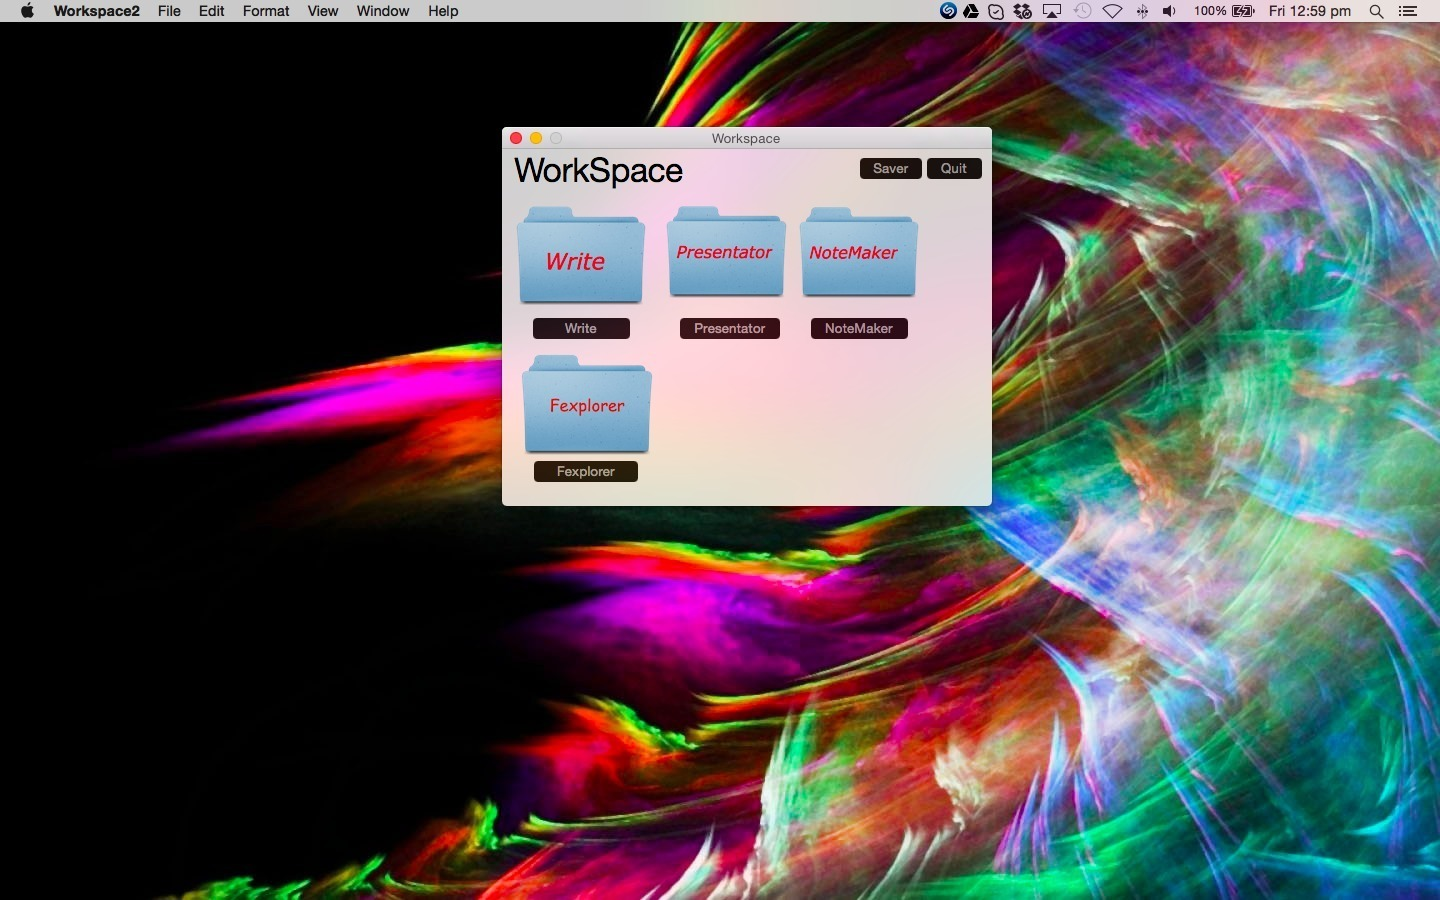 Screenshot 1 for Workspace